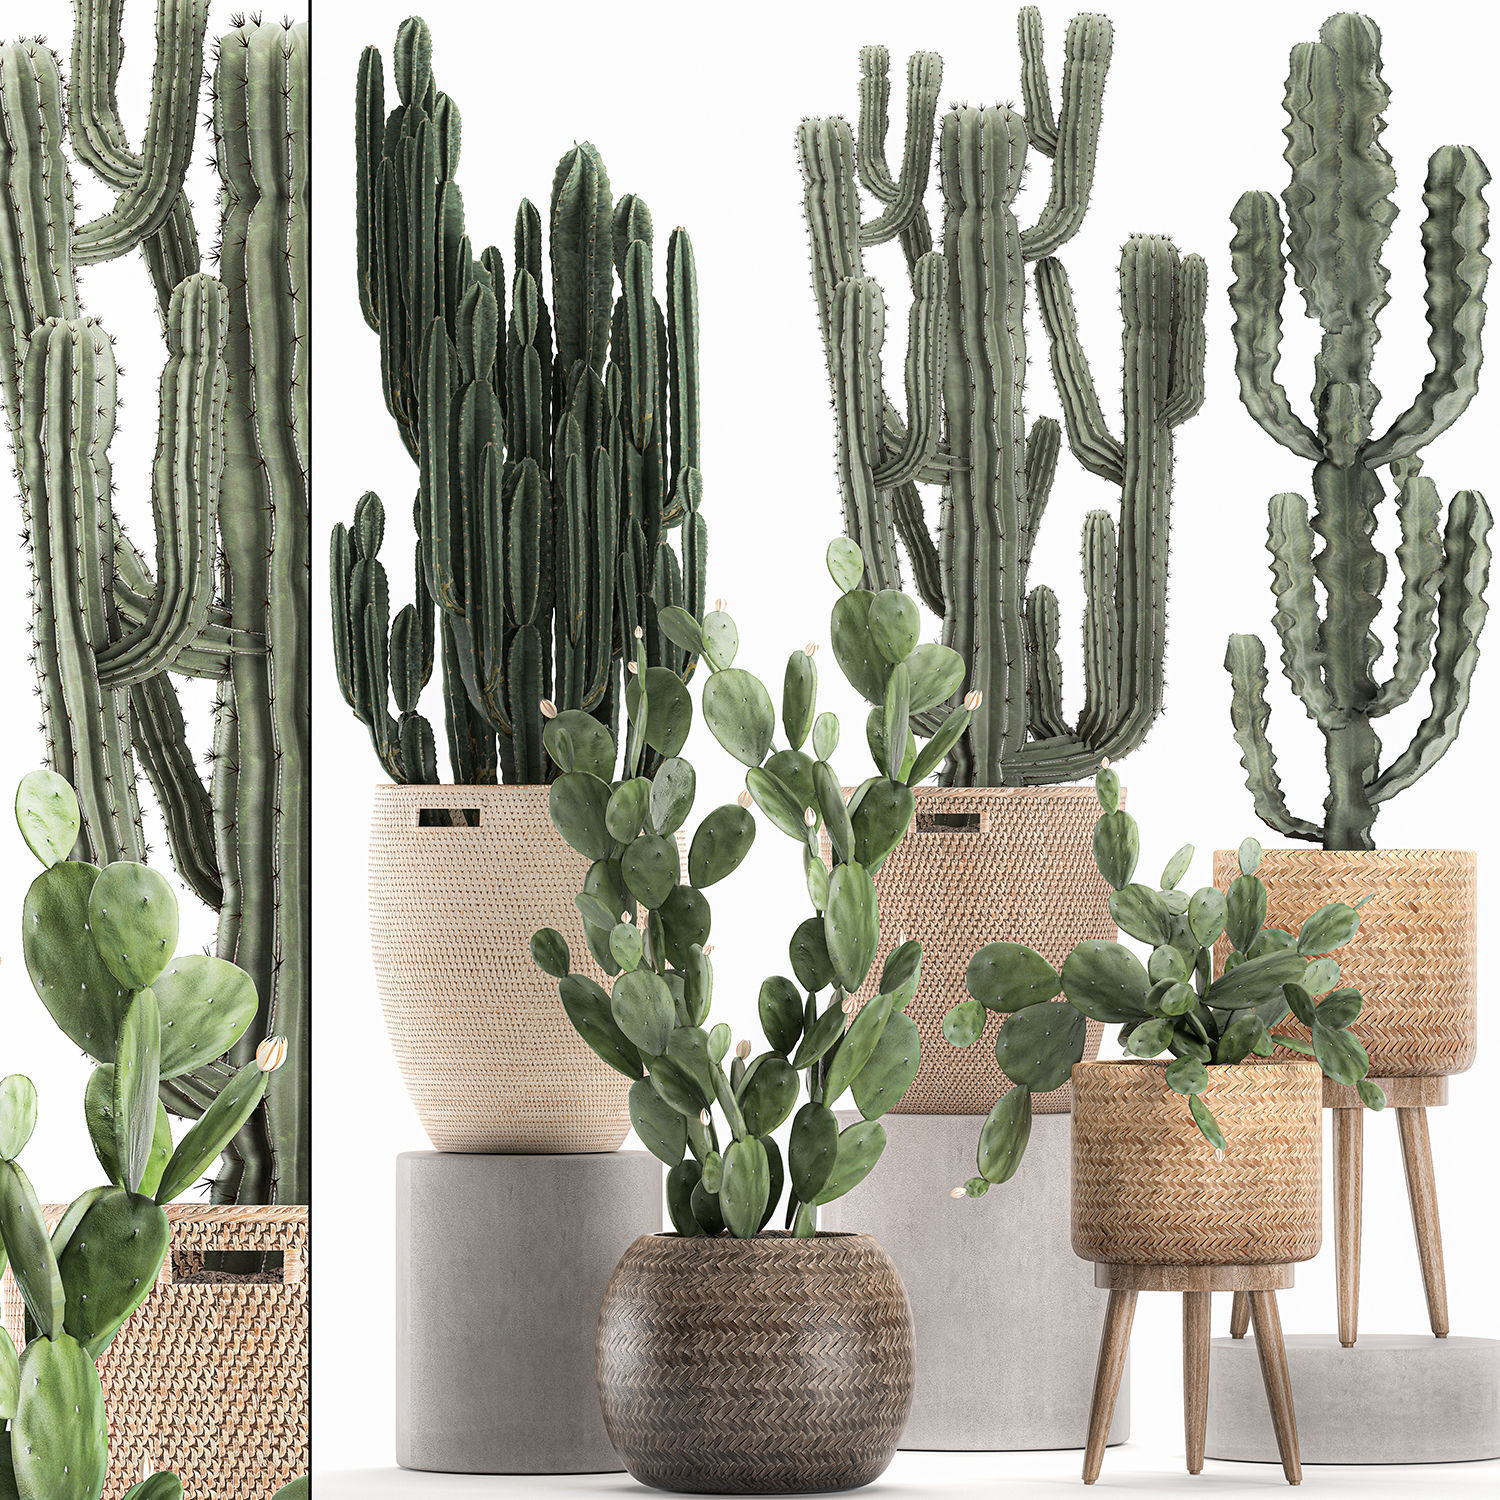 Decorative cactus in baskets for the interior 617